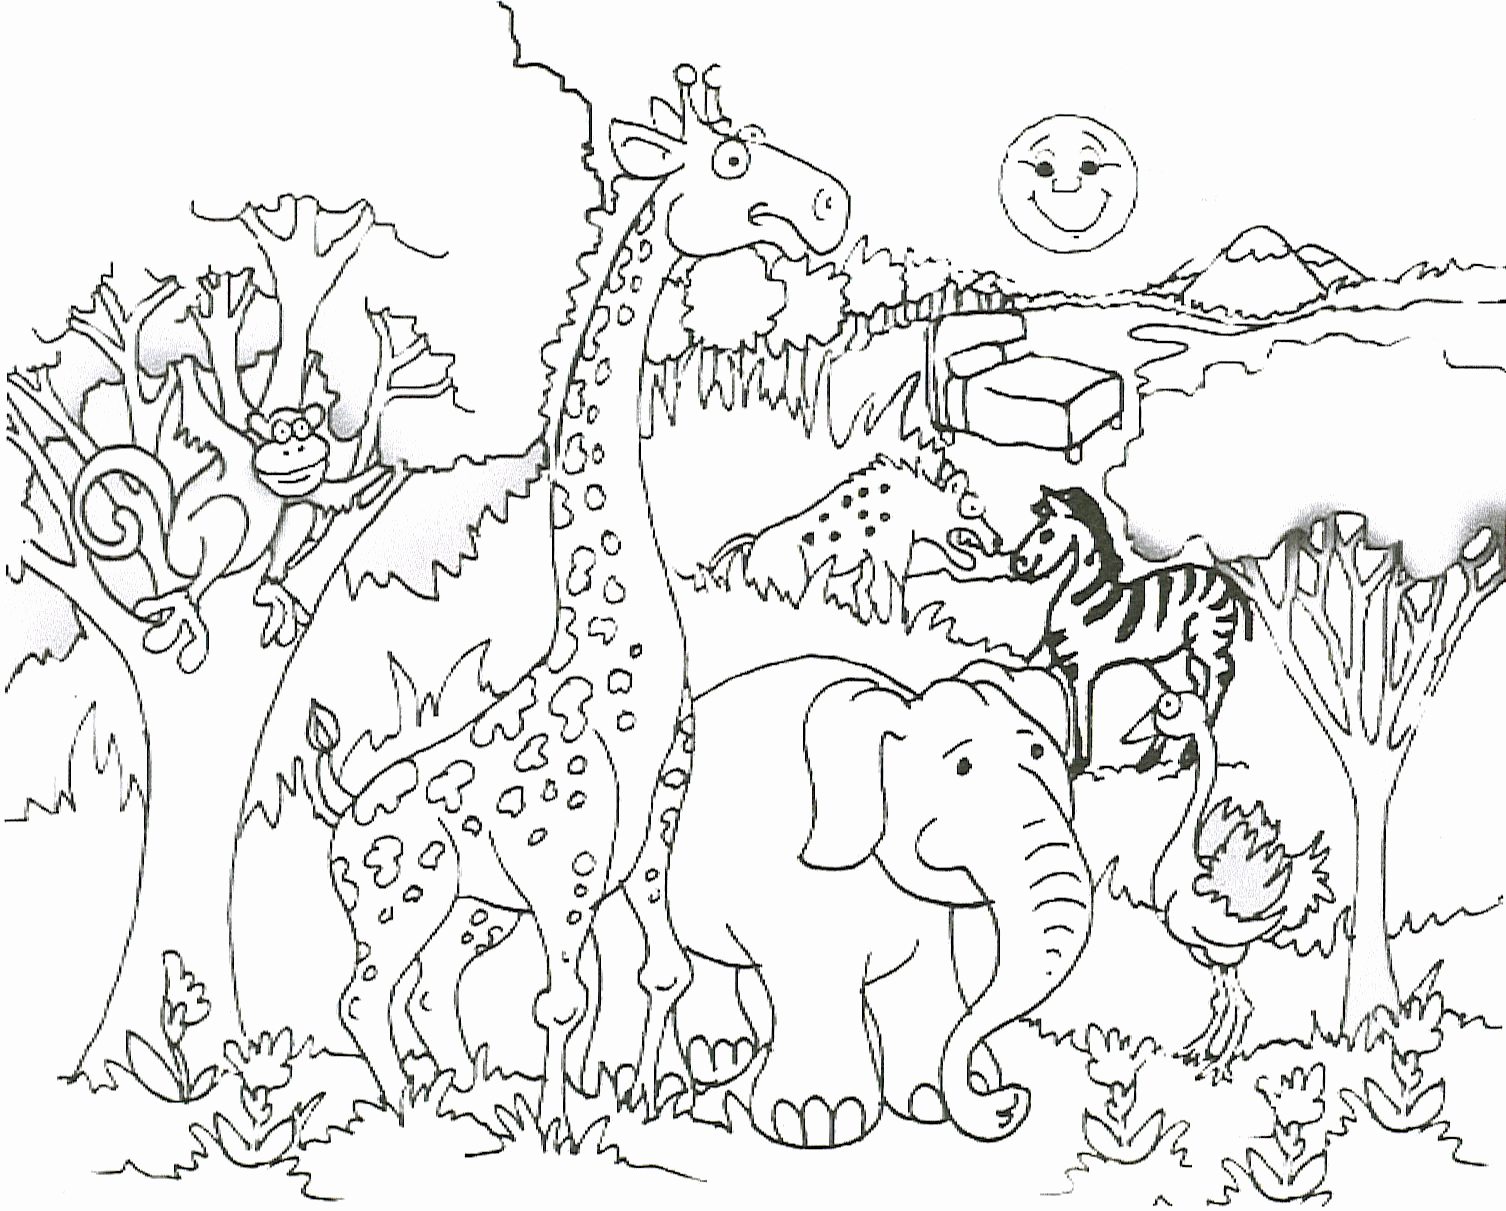 Animal Pictures to Color Lovely Free Printable Giraffe Coloring Pages for Kids